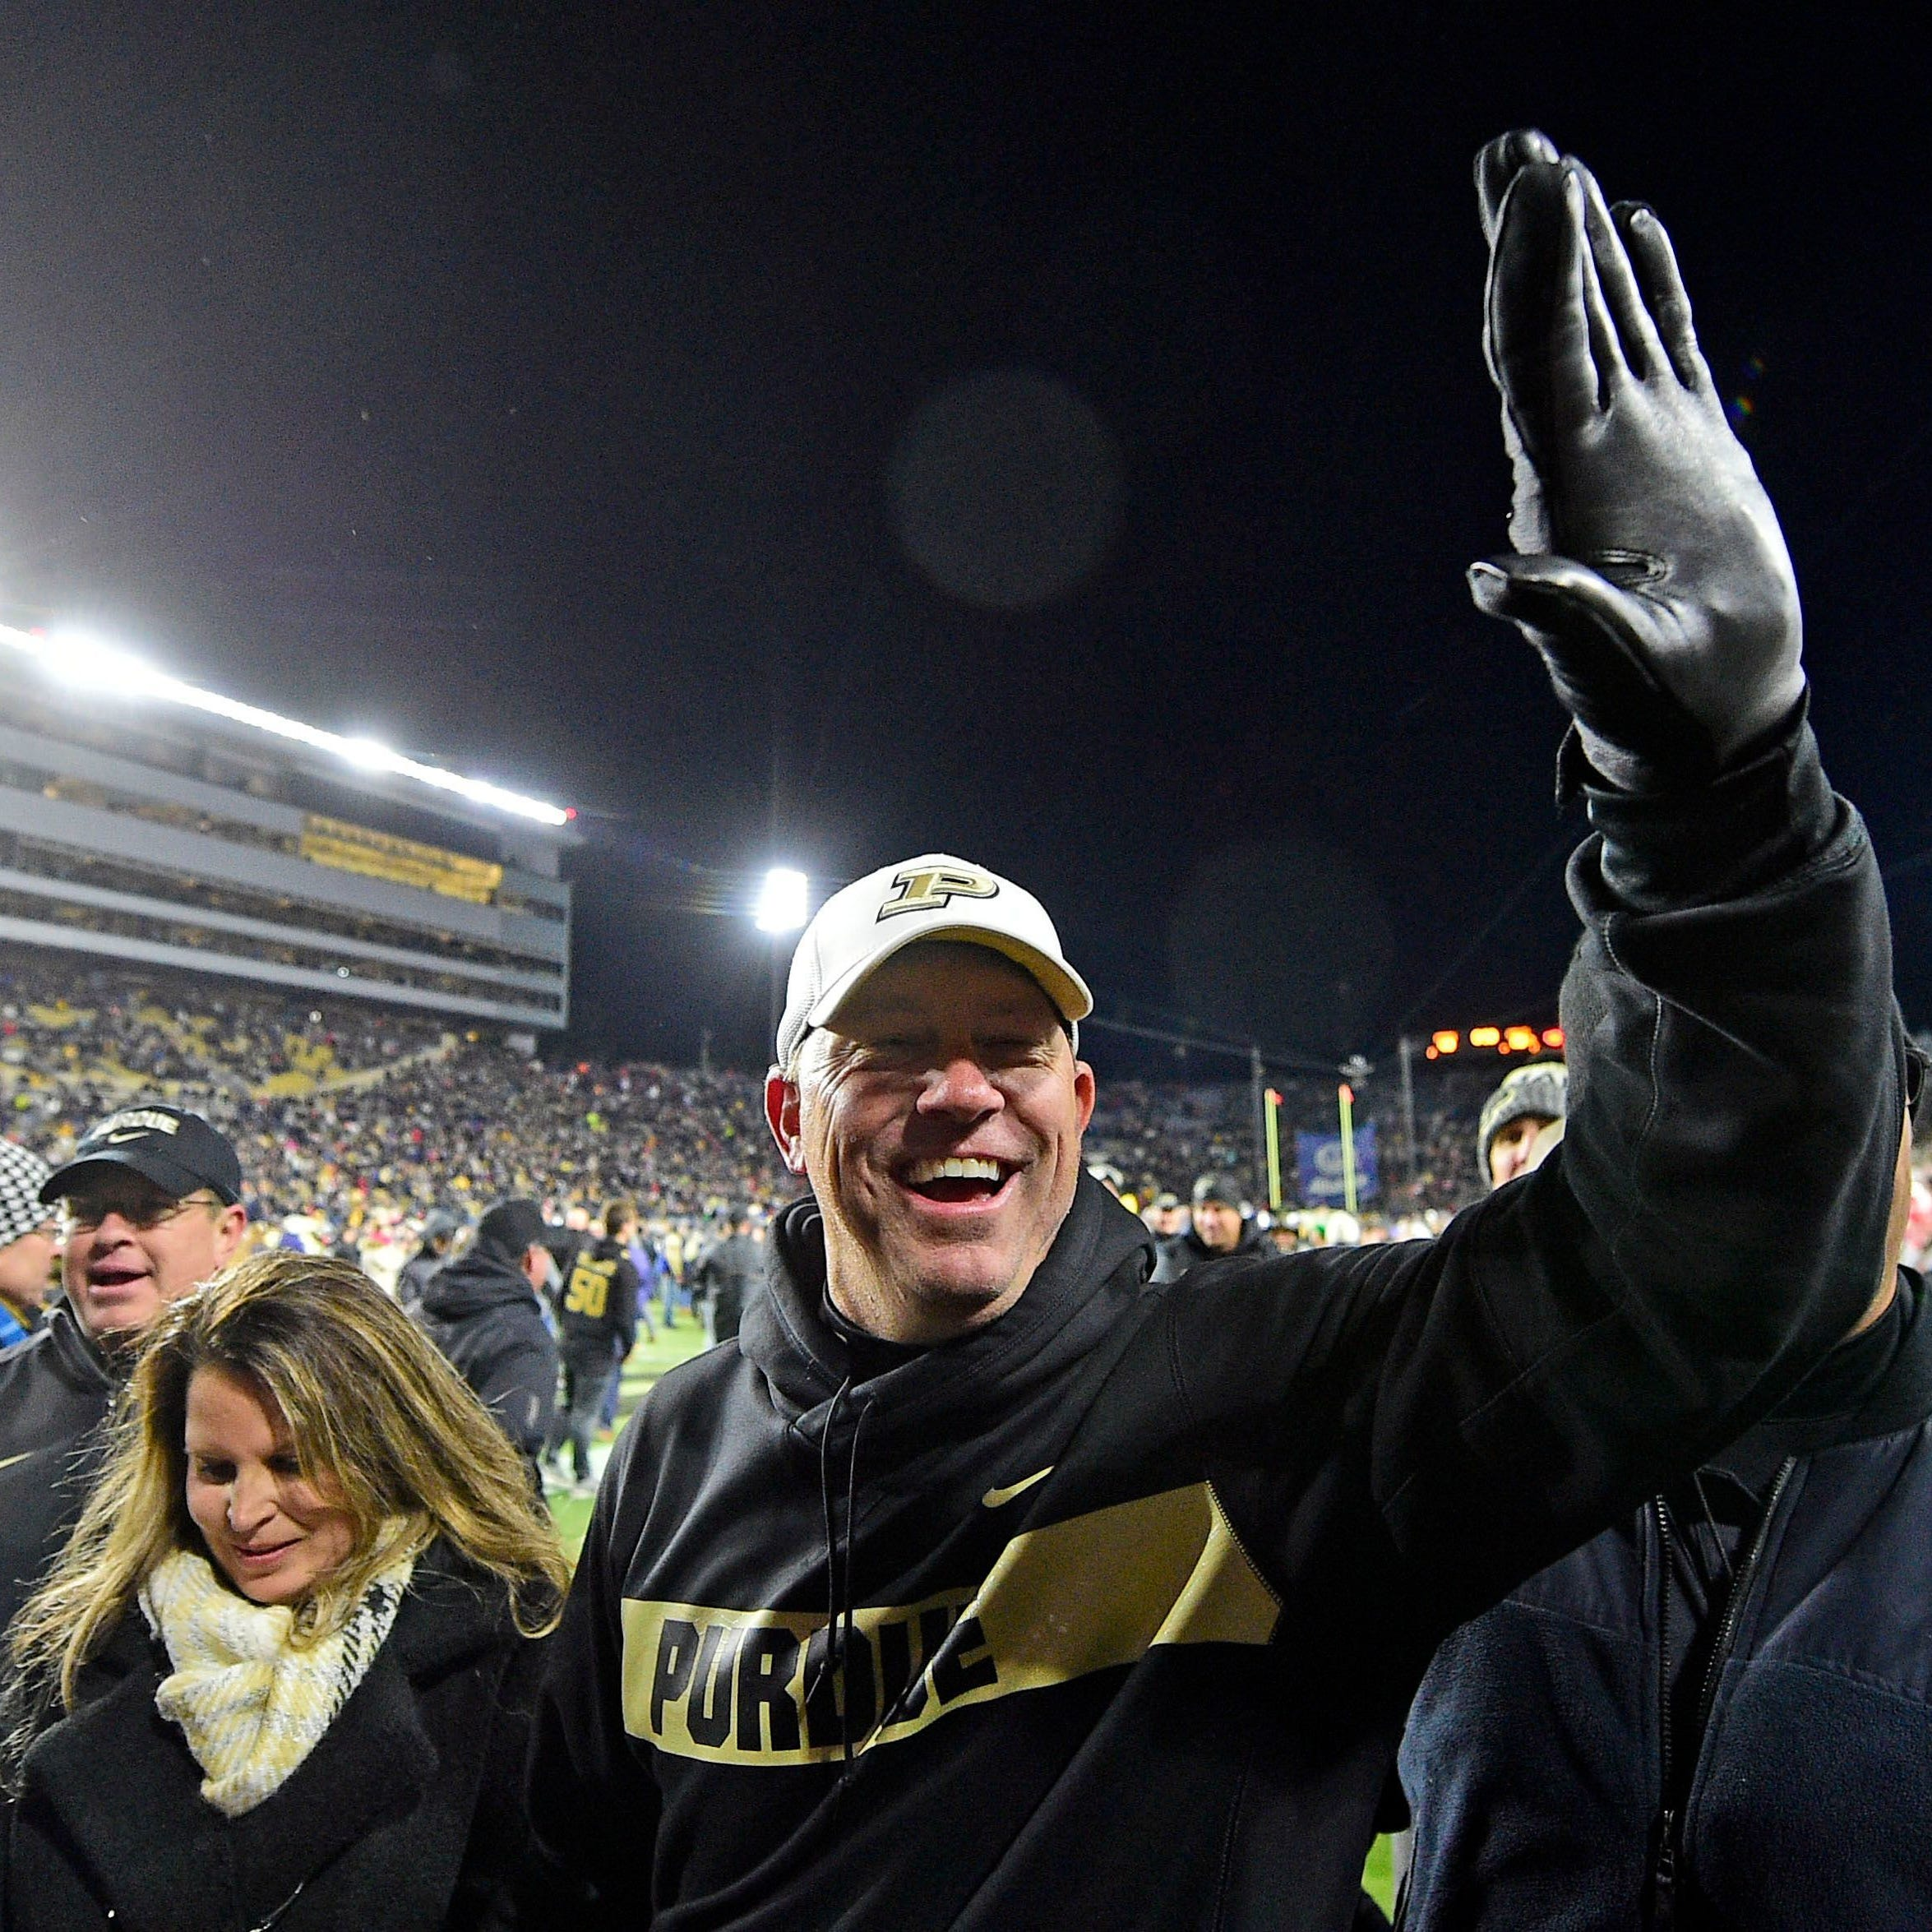 Jeff Brohm-to-Louisville noise deafening, but not a foregone conclusion